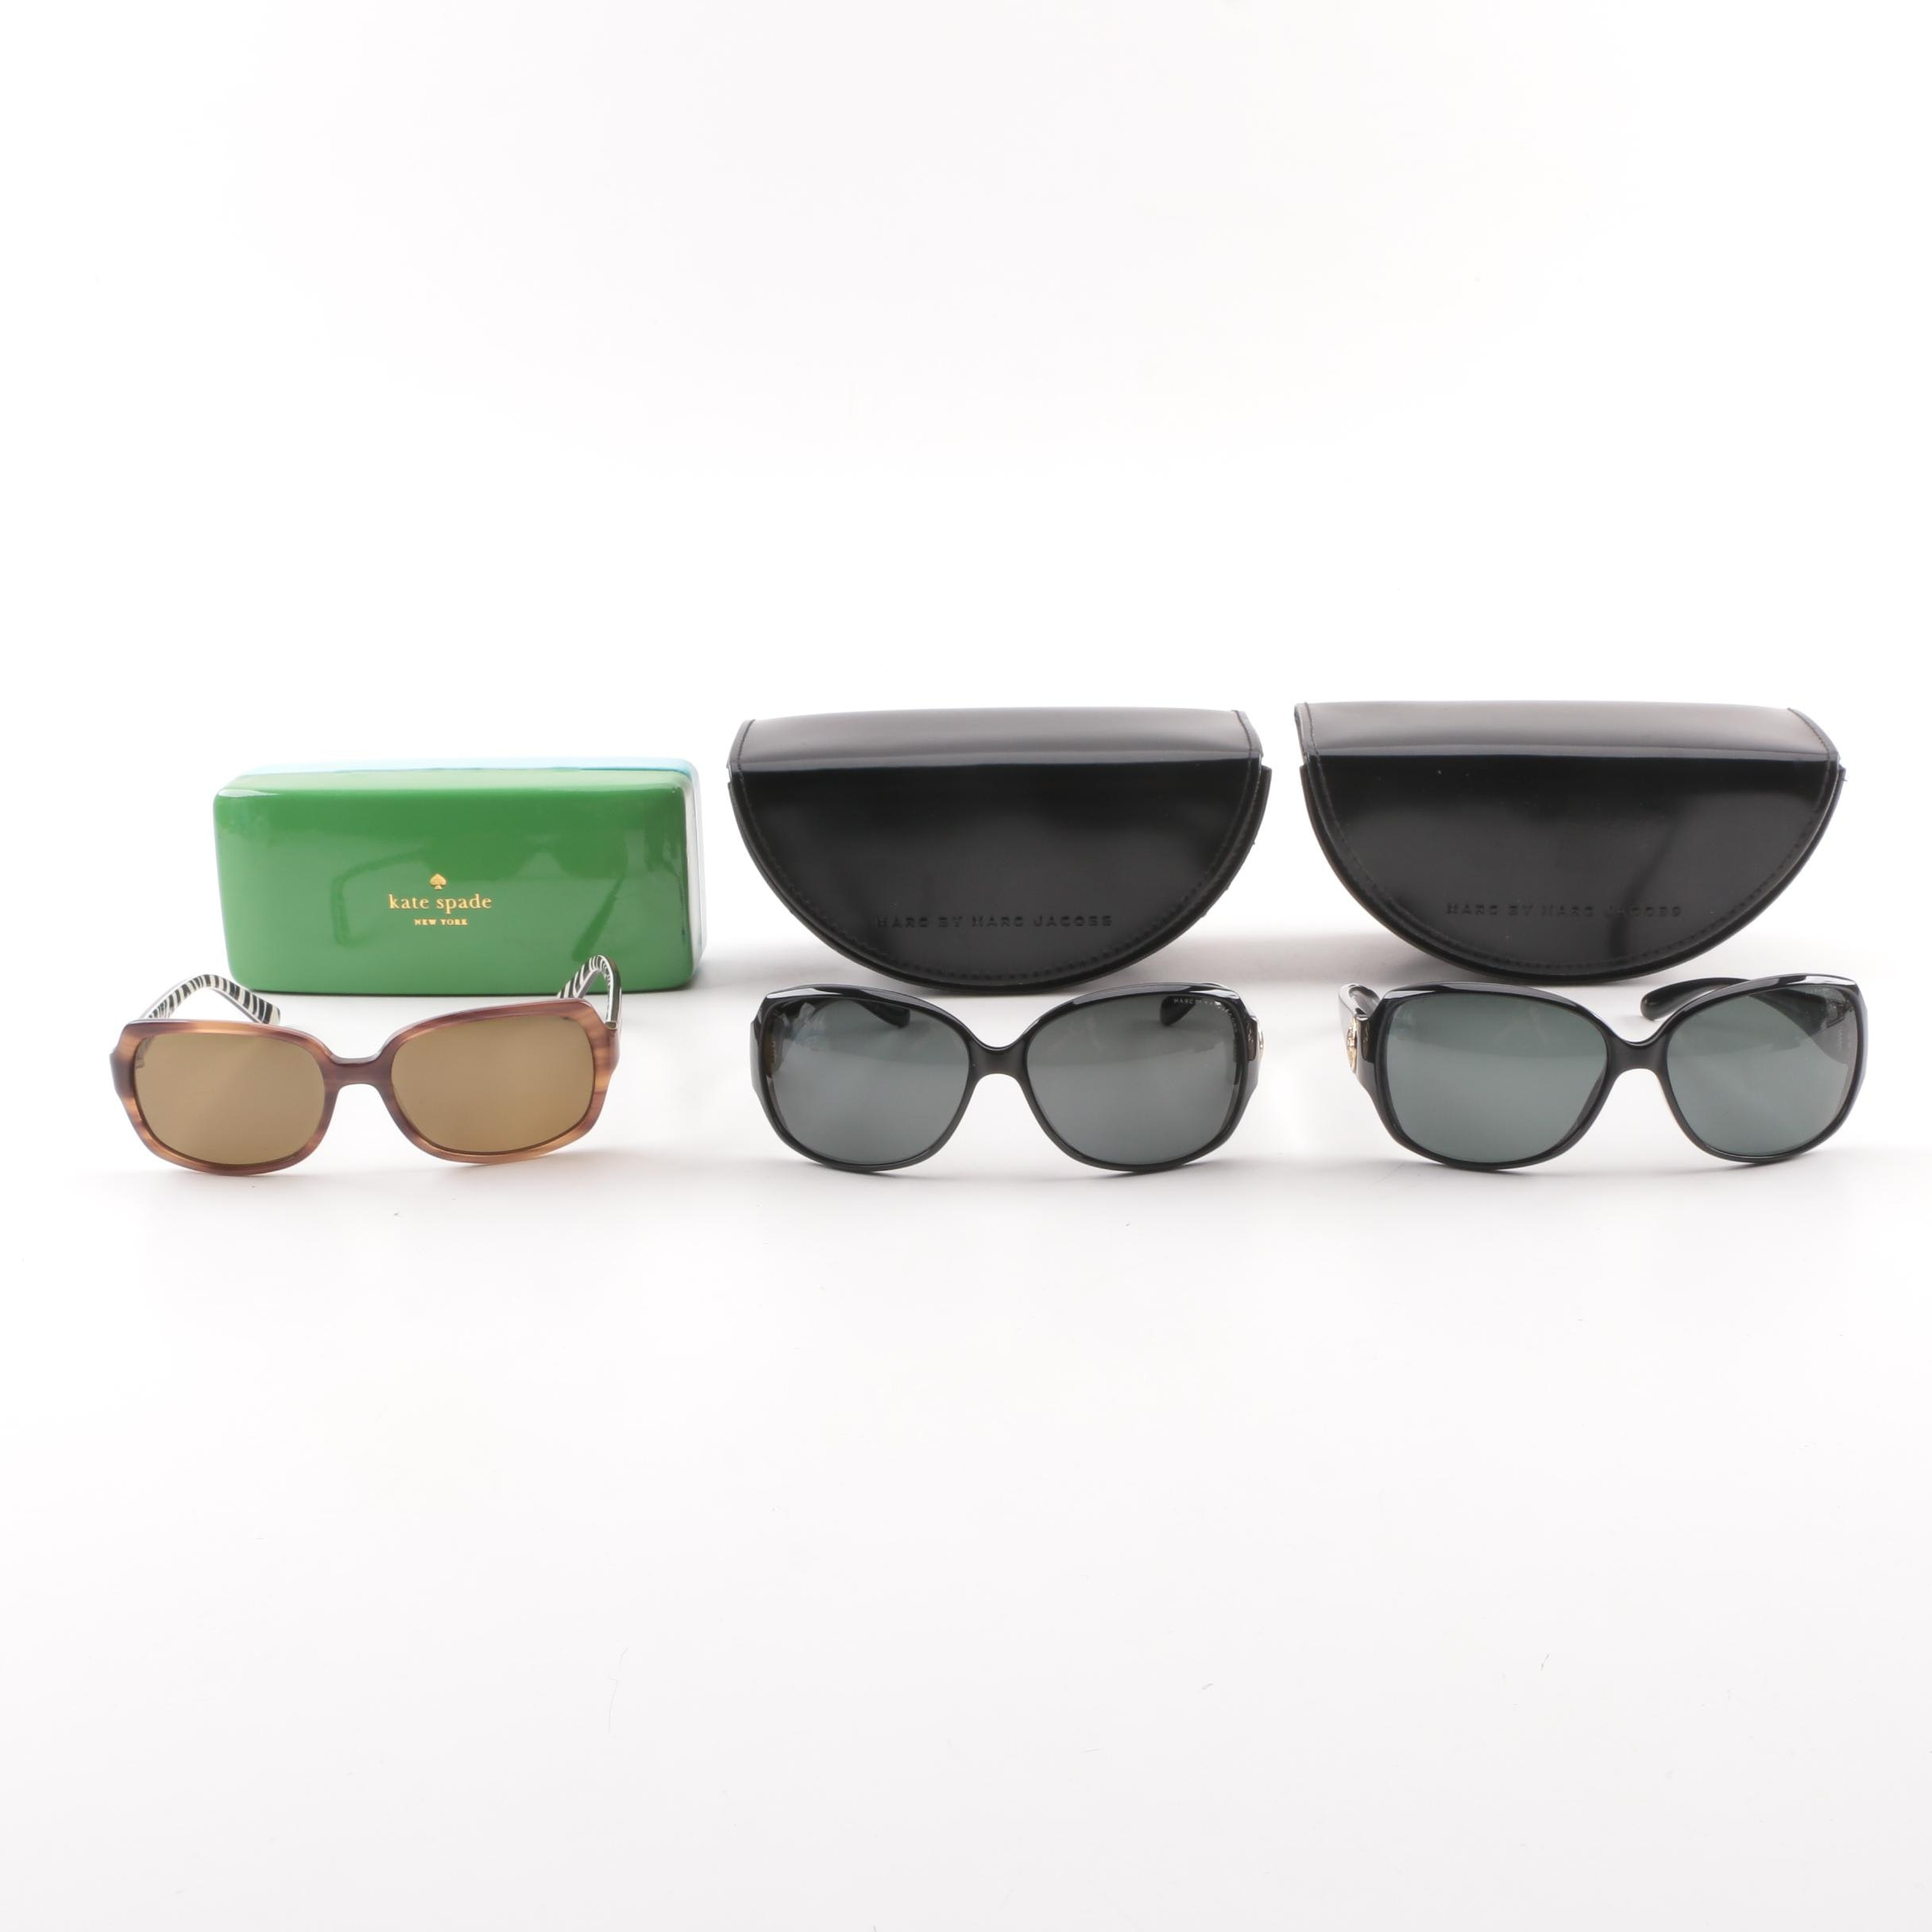 MARC by Marc Jacobs and Kate Spade New York Sunglasses with Cases